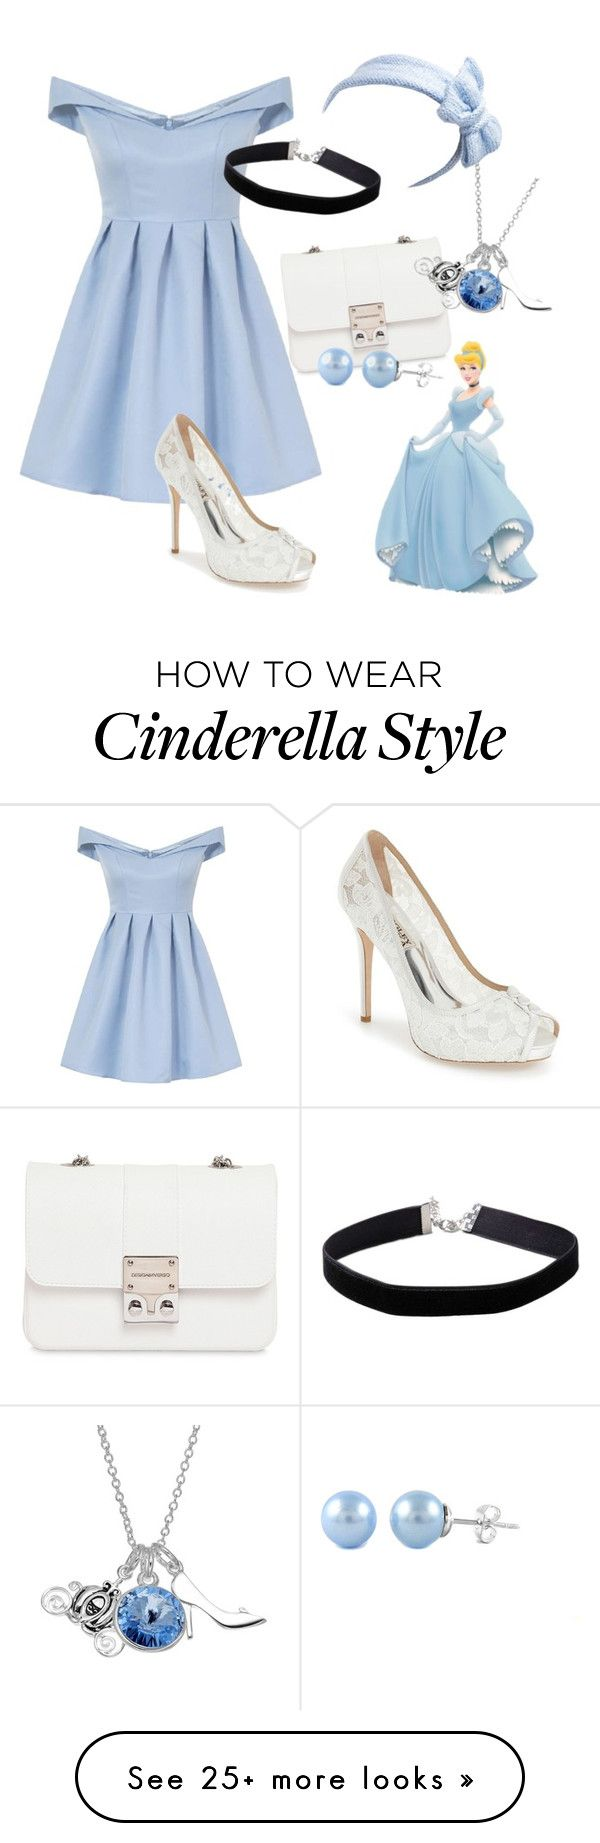 """Cinderella"" by arielle-22 on Polyvore featuring Design Inverso, Chi Chi, Miss Selfridge, Disney, Beauxoxo, Badgley Mischka, disney, cinderella, princess and disneybound"